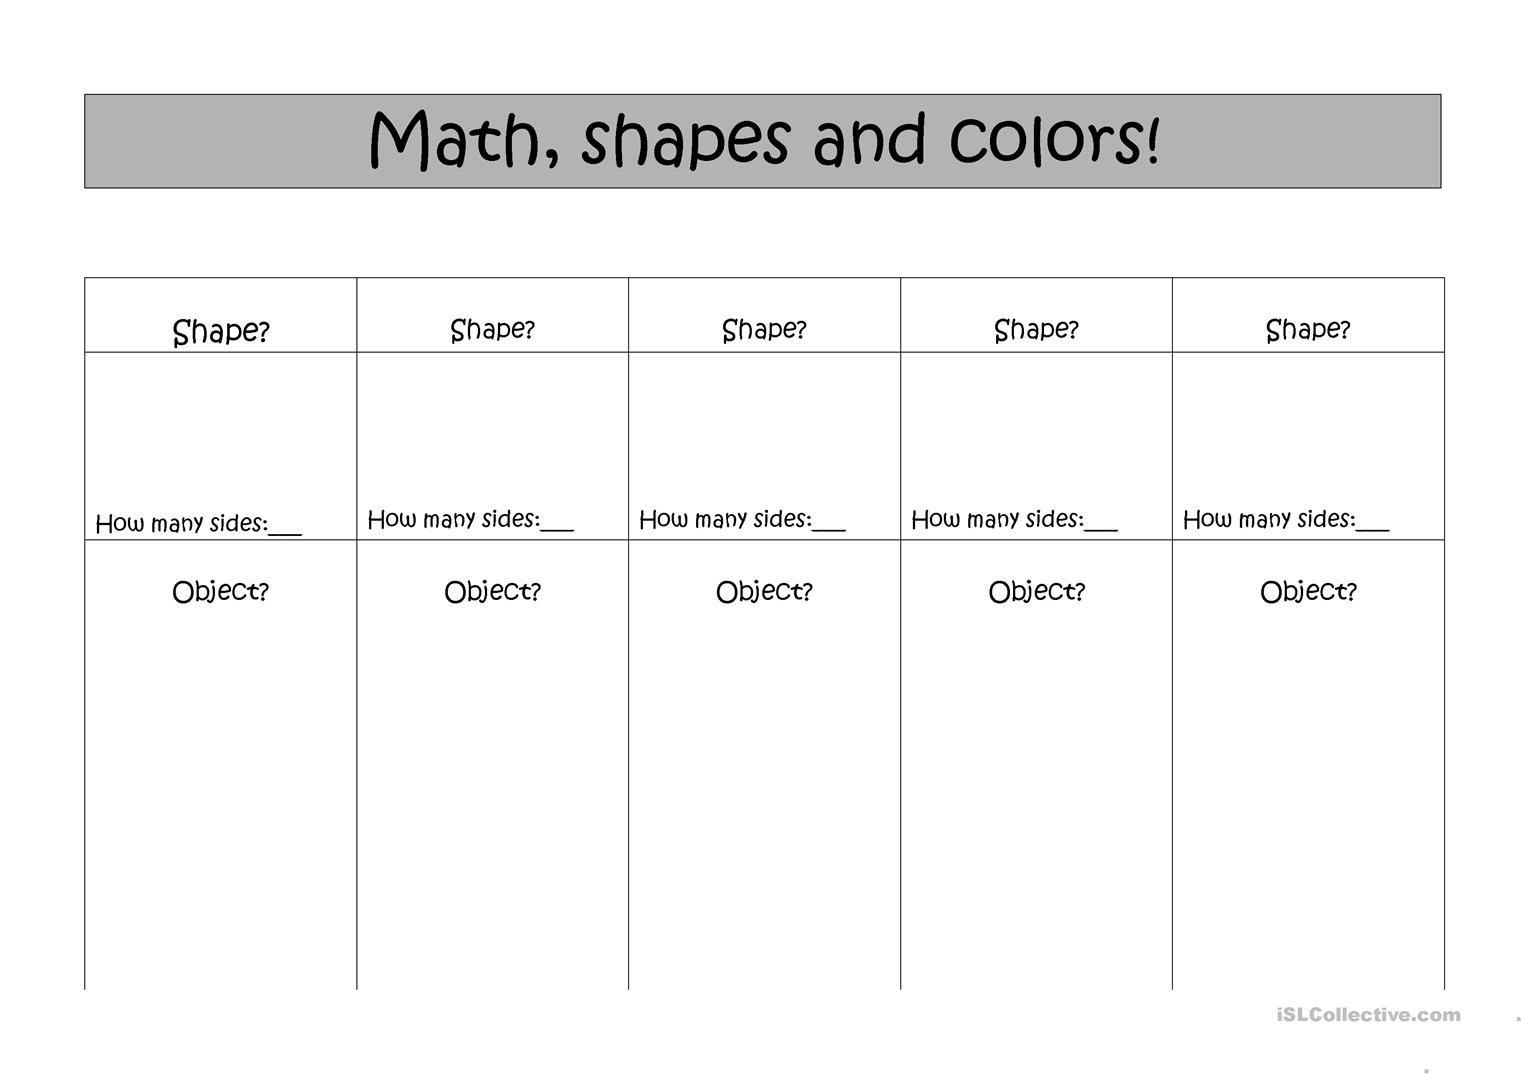 Math Shapes And Colors Worksheet